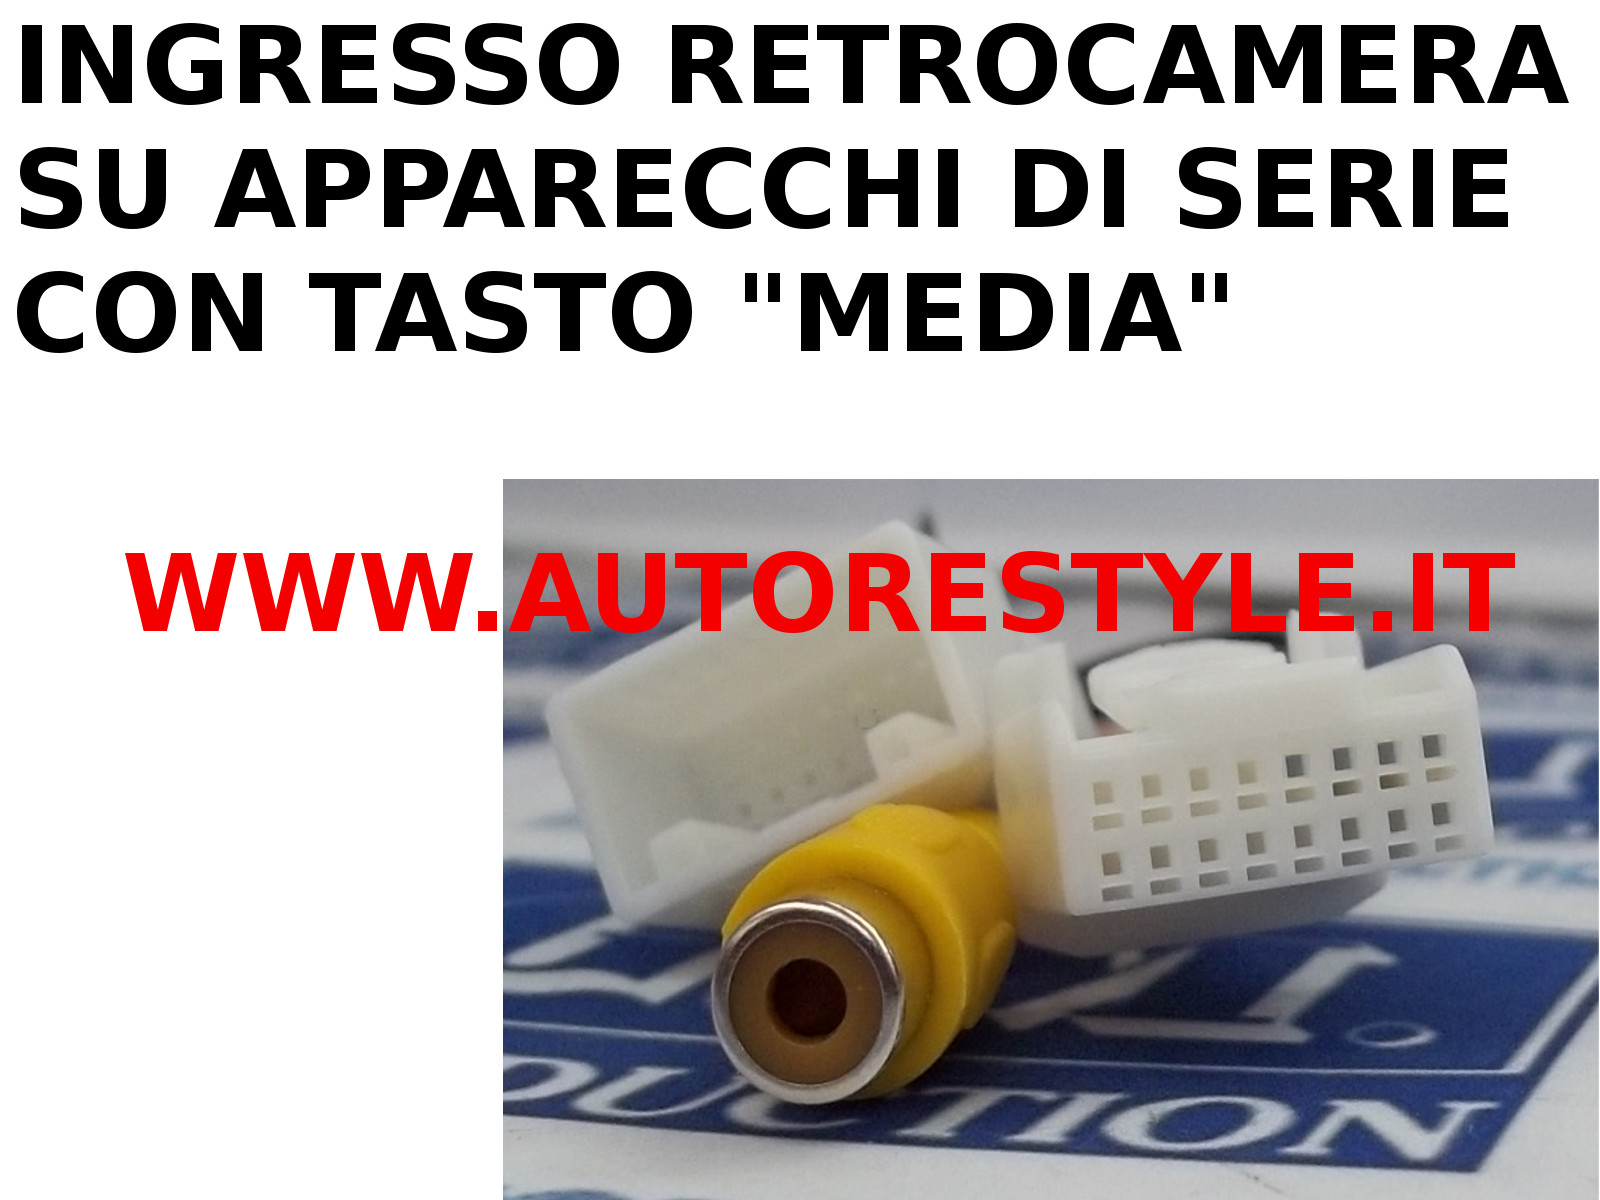 INTERFACCIA INGRESSO RETROCAMERA SU MONITOR DI SERIE TOYOTA GT86 PRIUS E PRIUS PLUS CON TASTO MEDIA DAL 2012